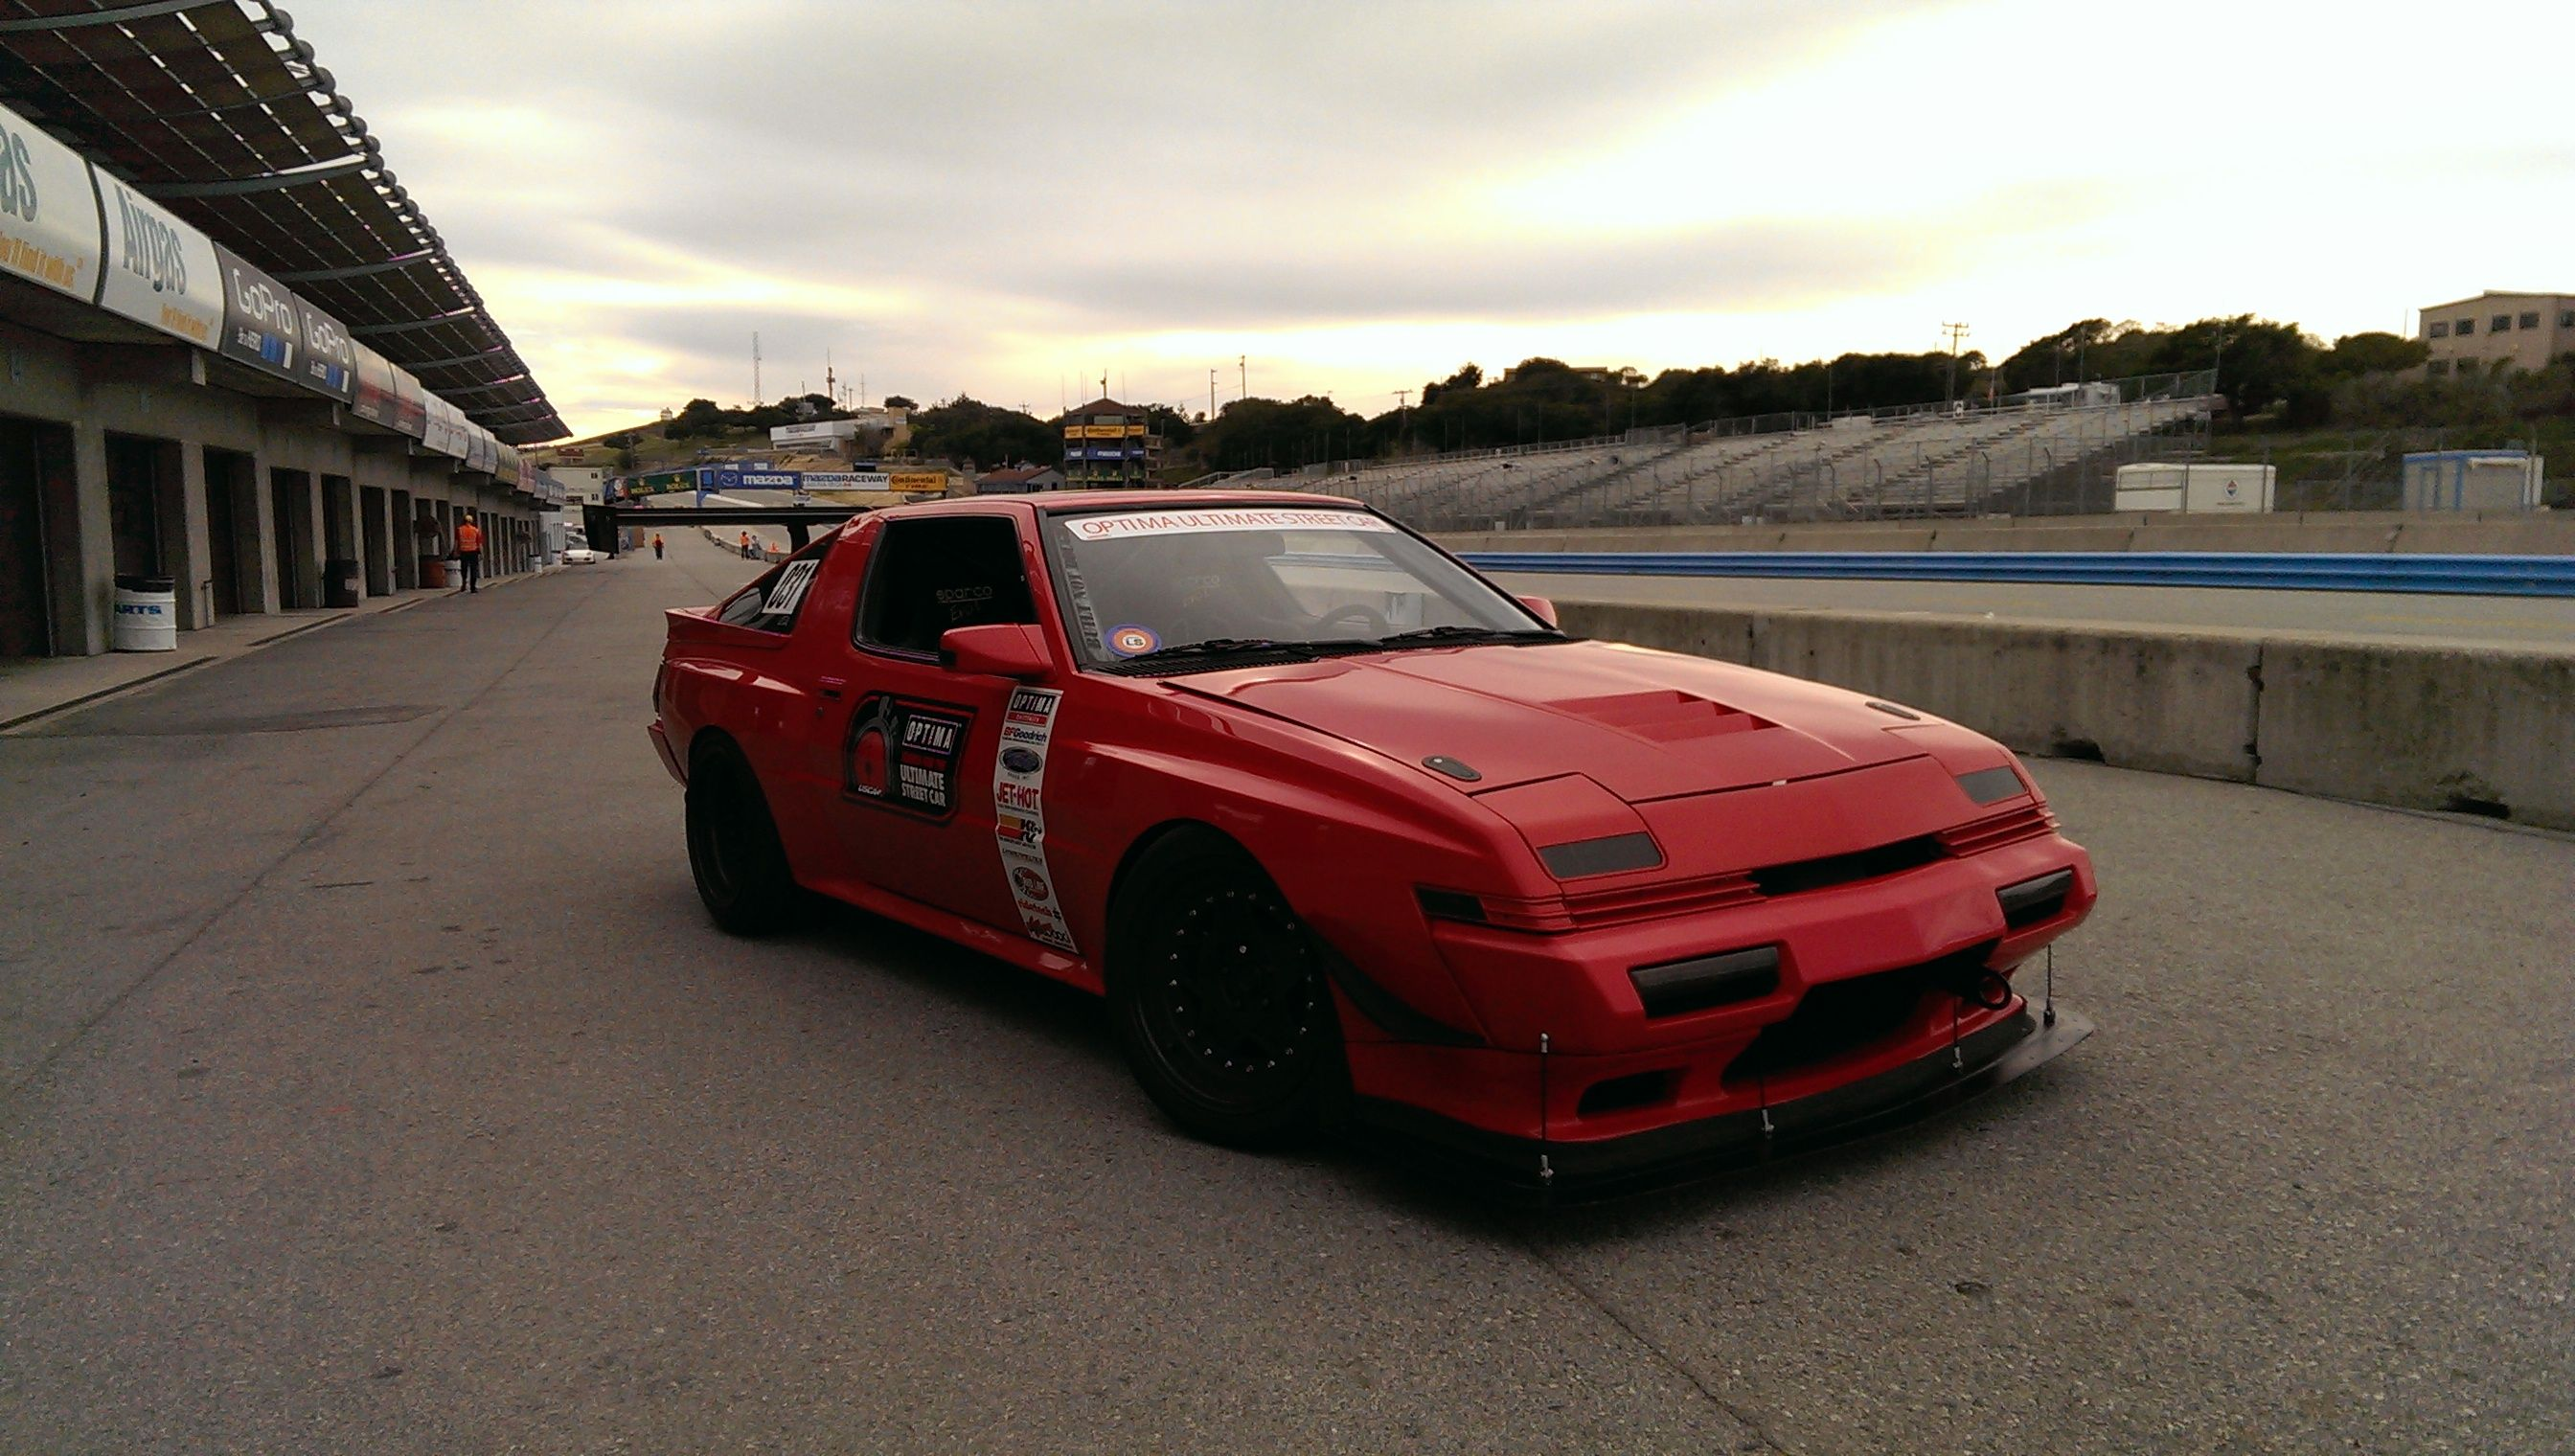 Mitsubishi Starion Classic Cars Pinterest Dodge Conquest Chrysler Hot Rods